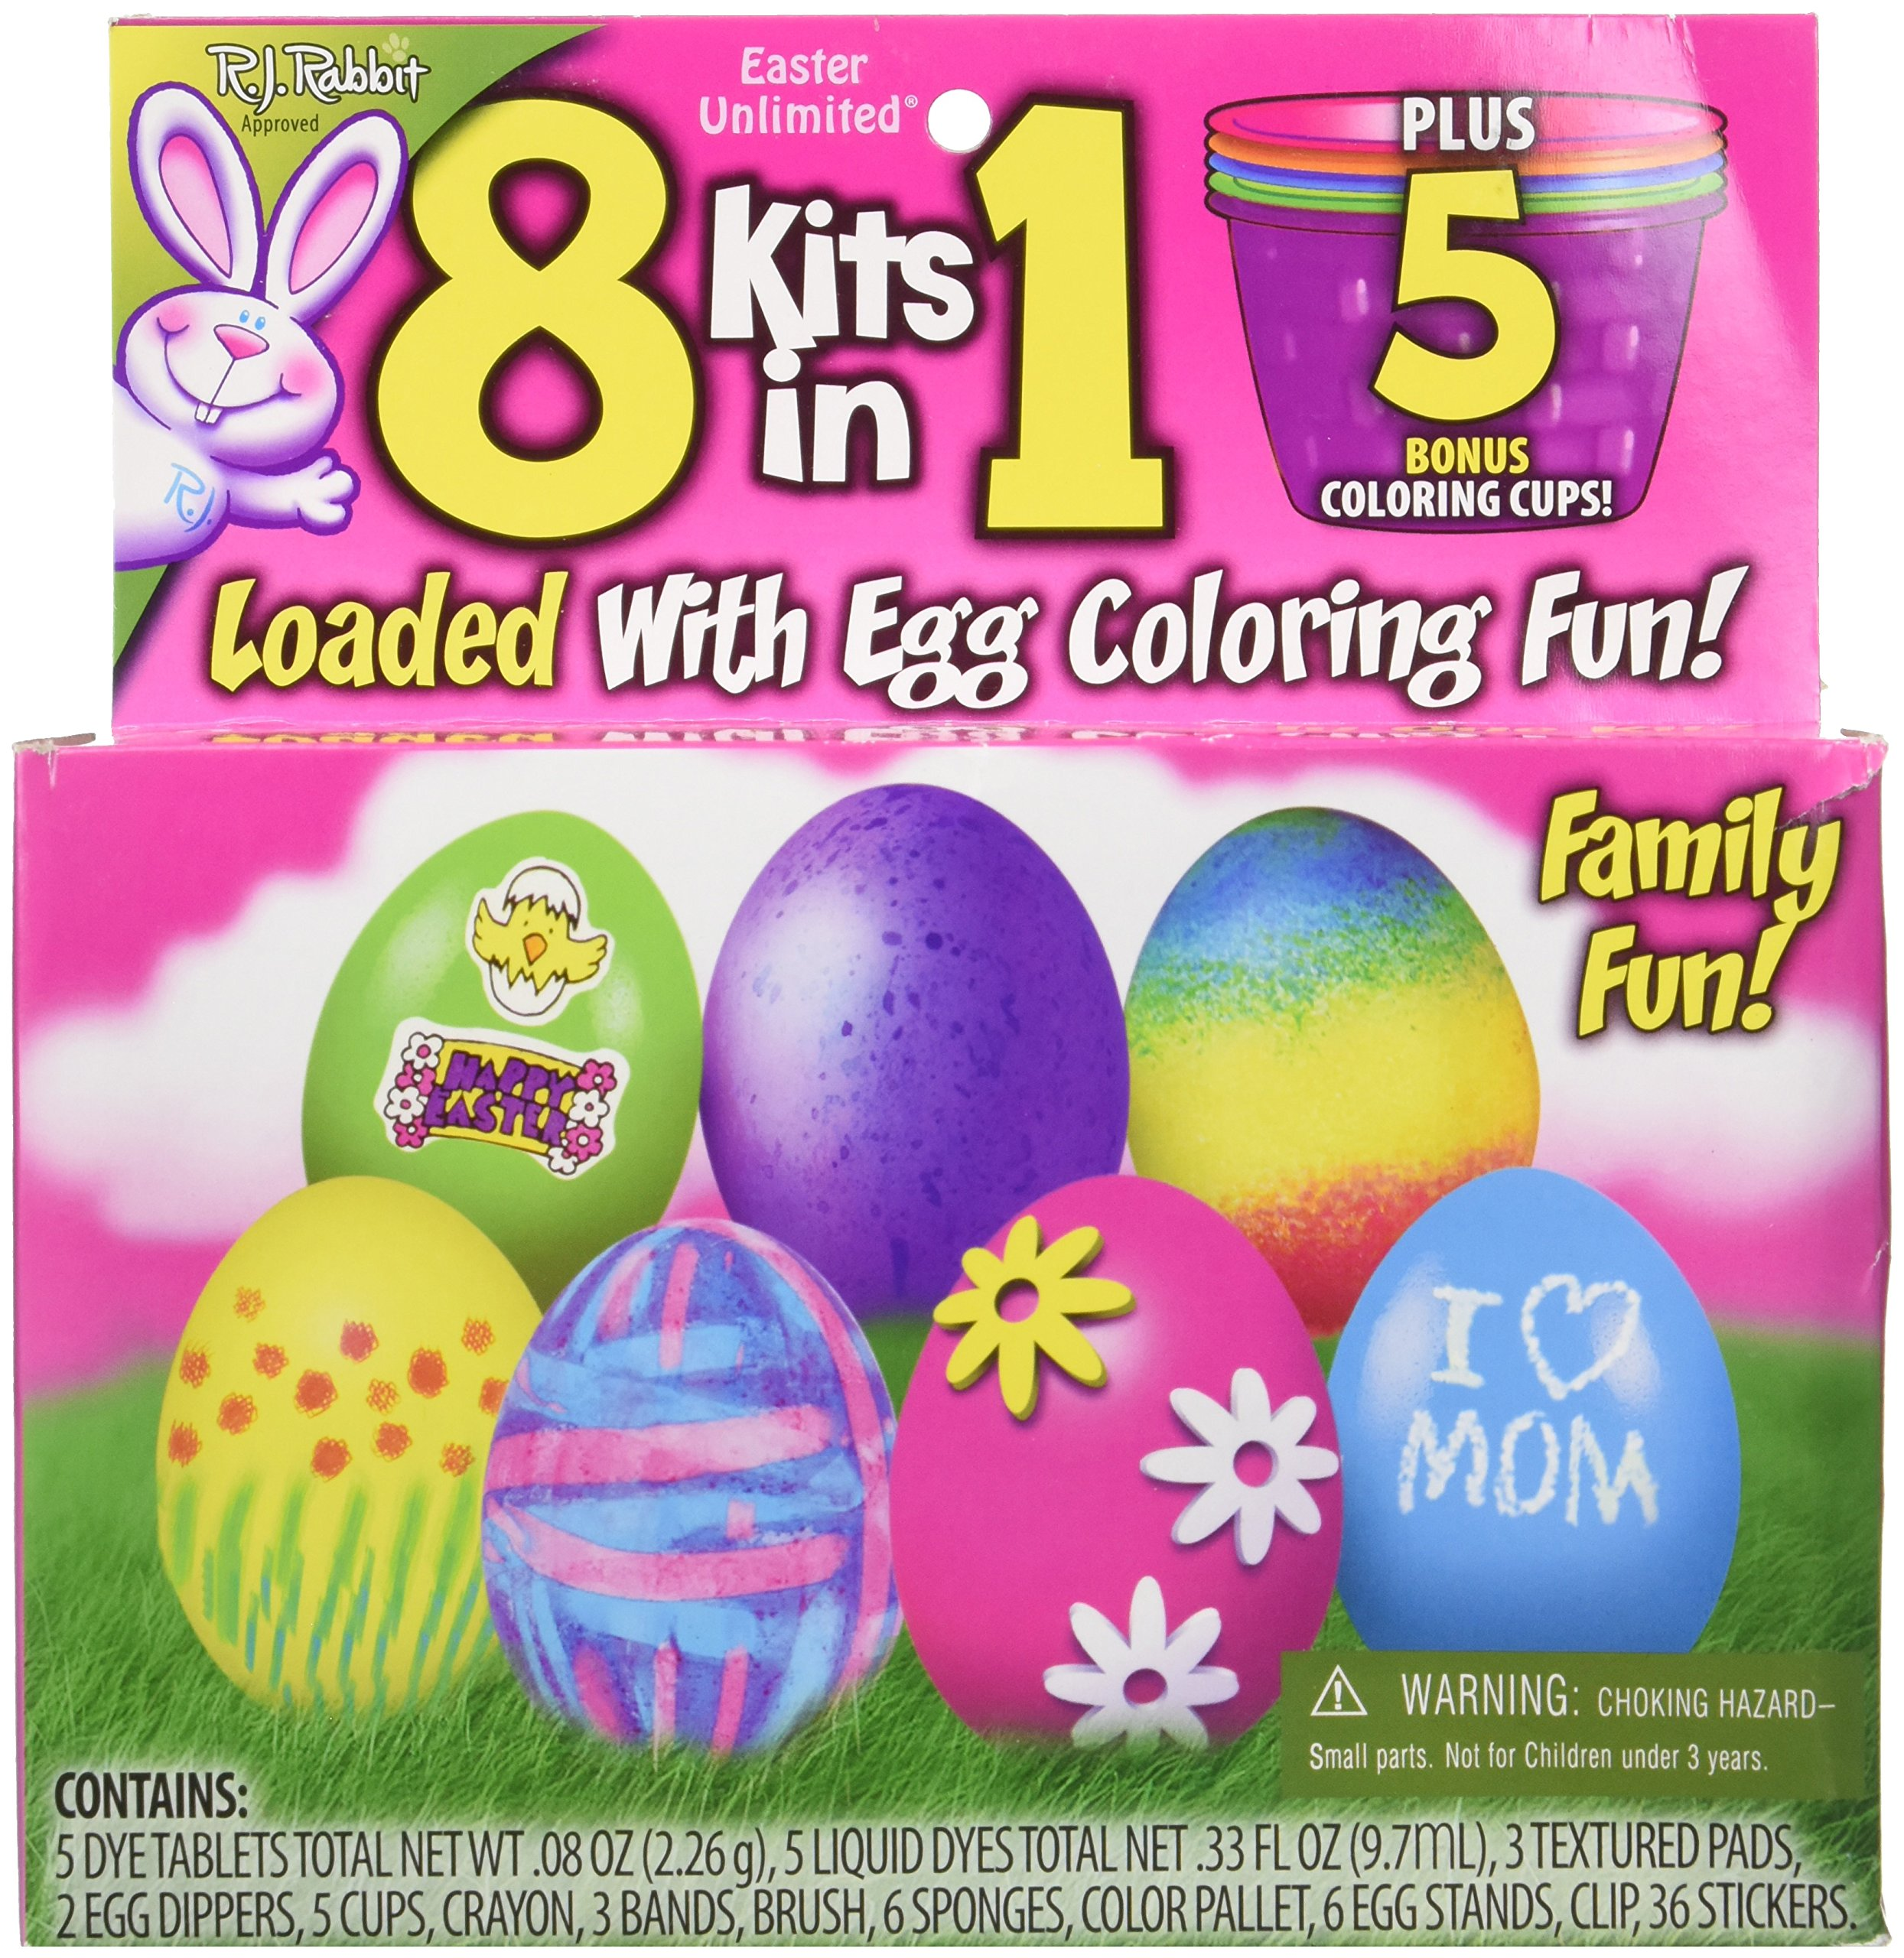 8 Kits in 1 Easy-to-do Egg Decorating Family Friendly Kit